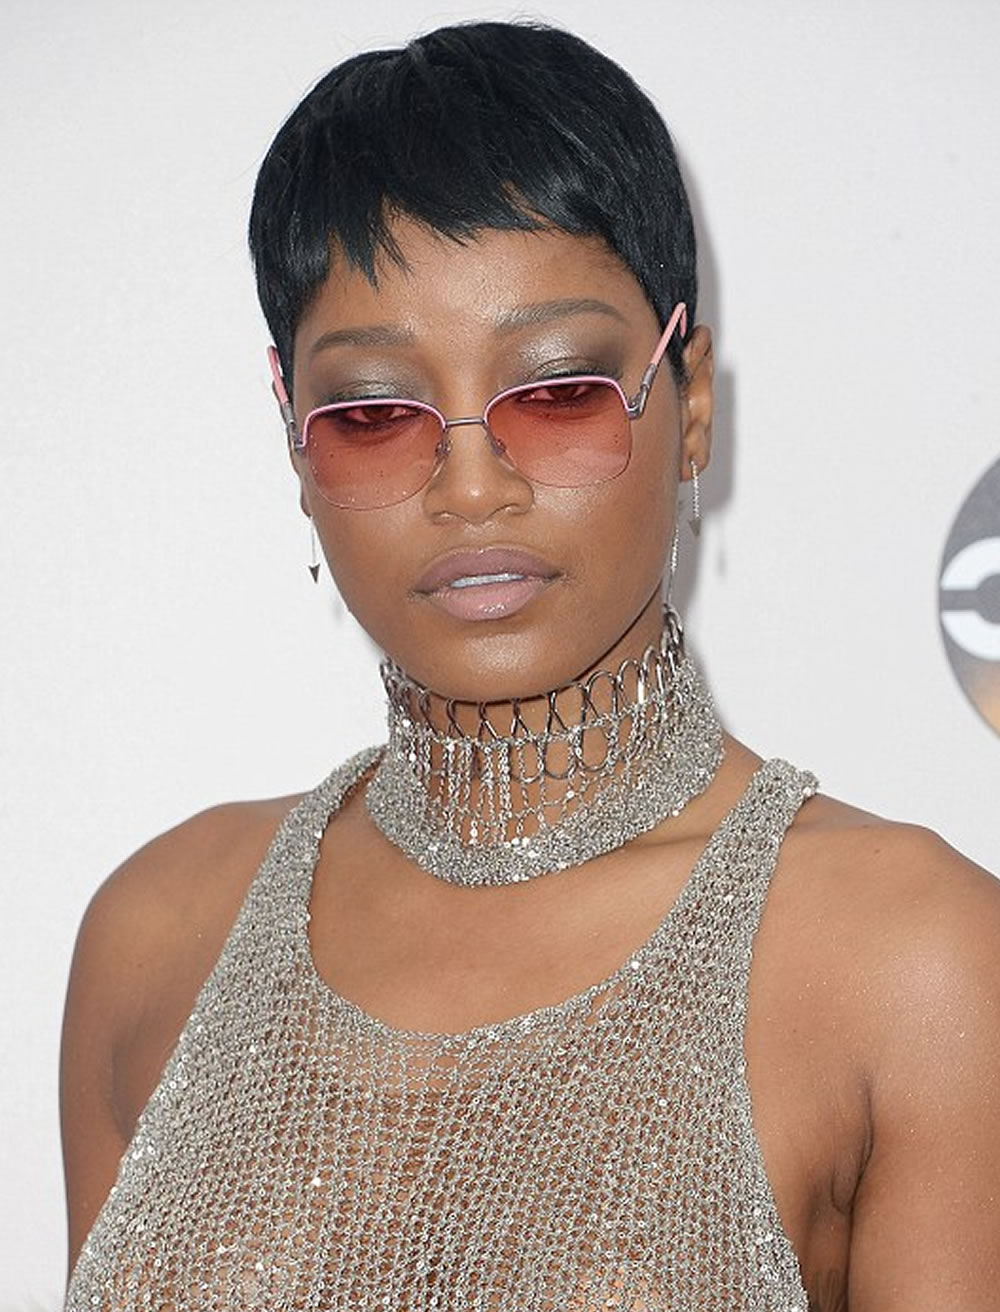 Very Short Pixie Haircuts For Black Women 2018 2019 – Hairstyles In Really Short Haircuts For Black Women (View 20 of 25)